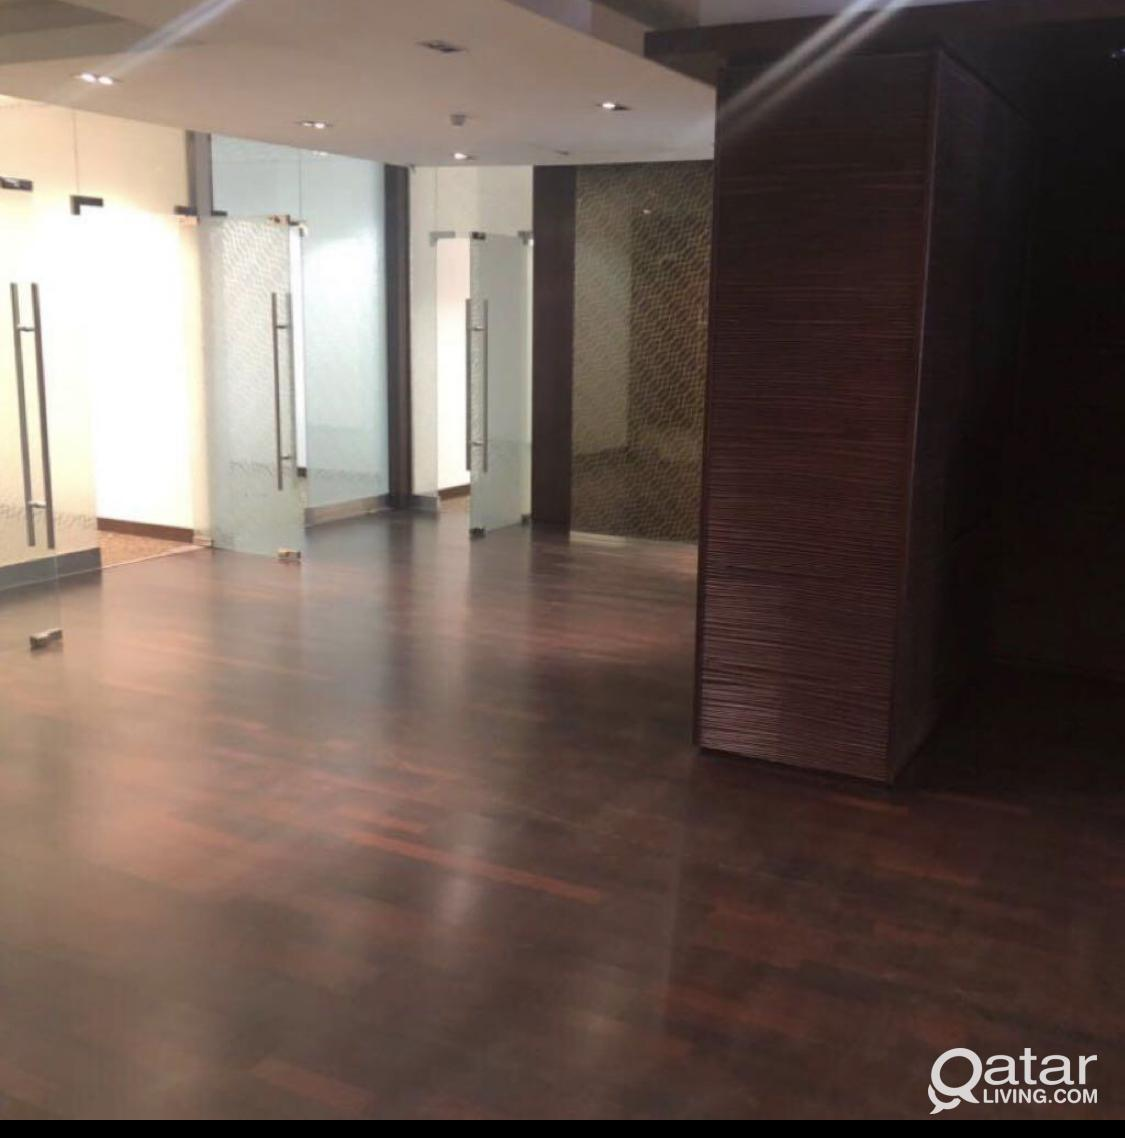 Offices for rent brand new